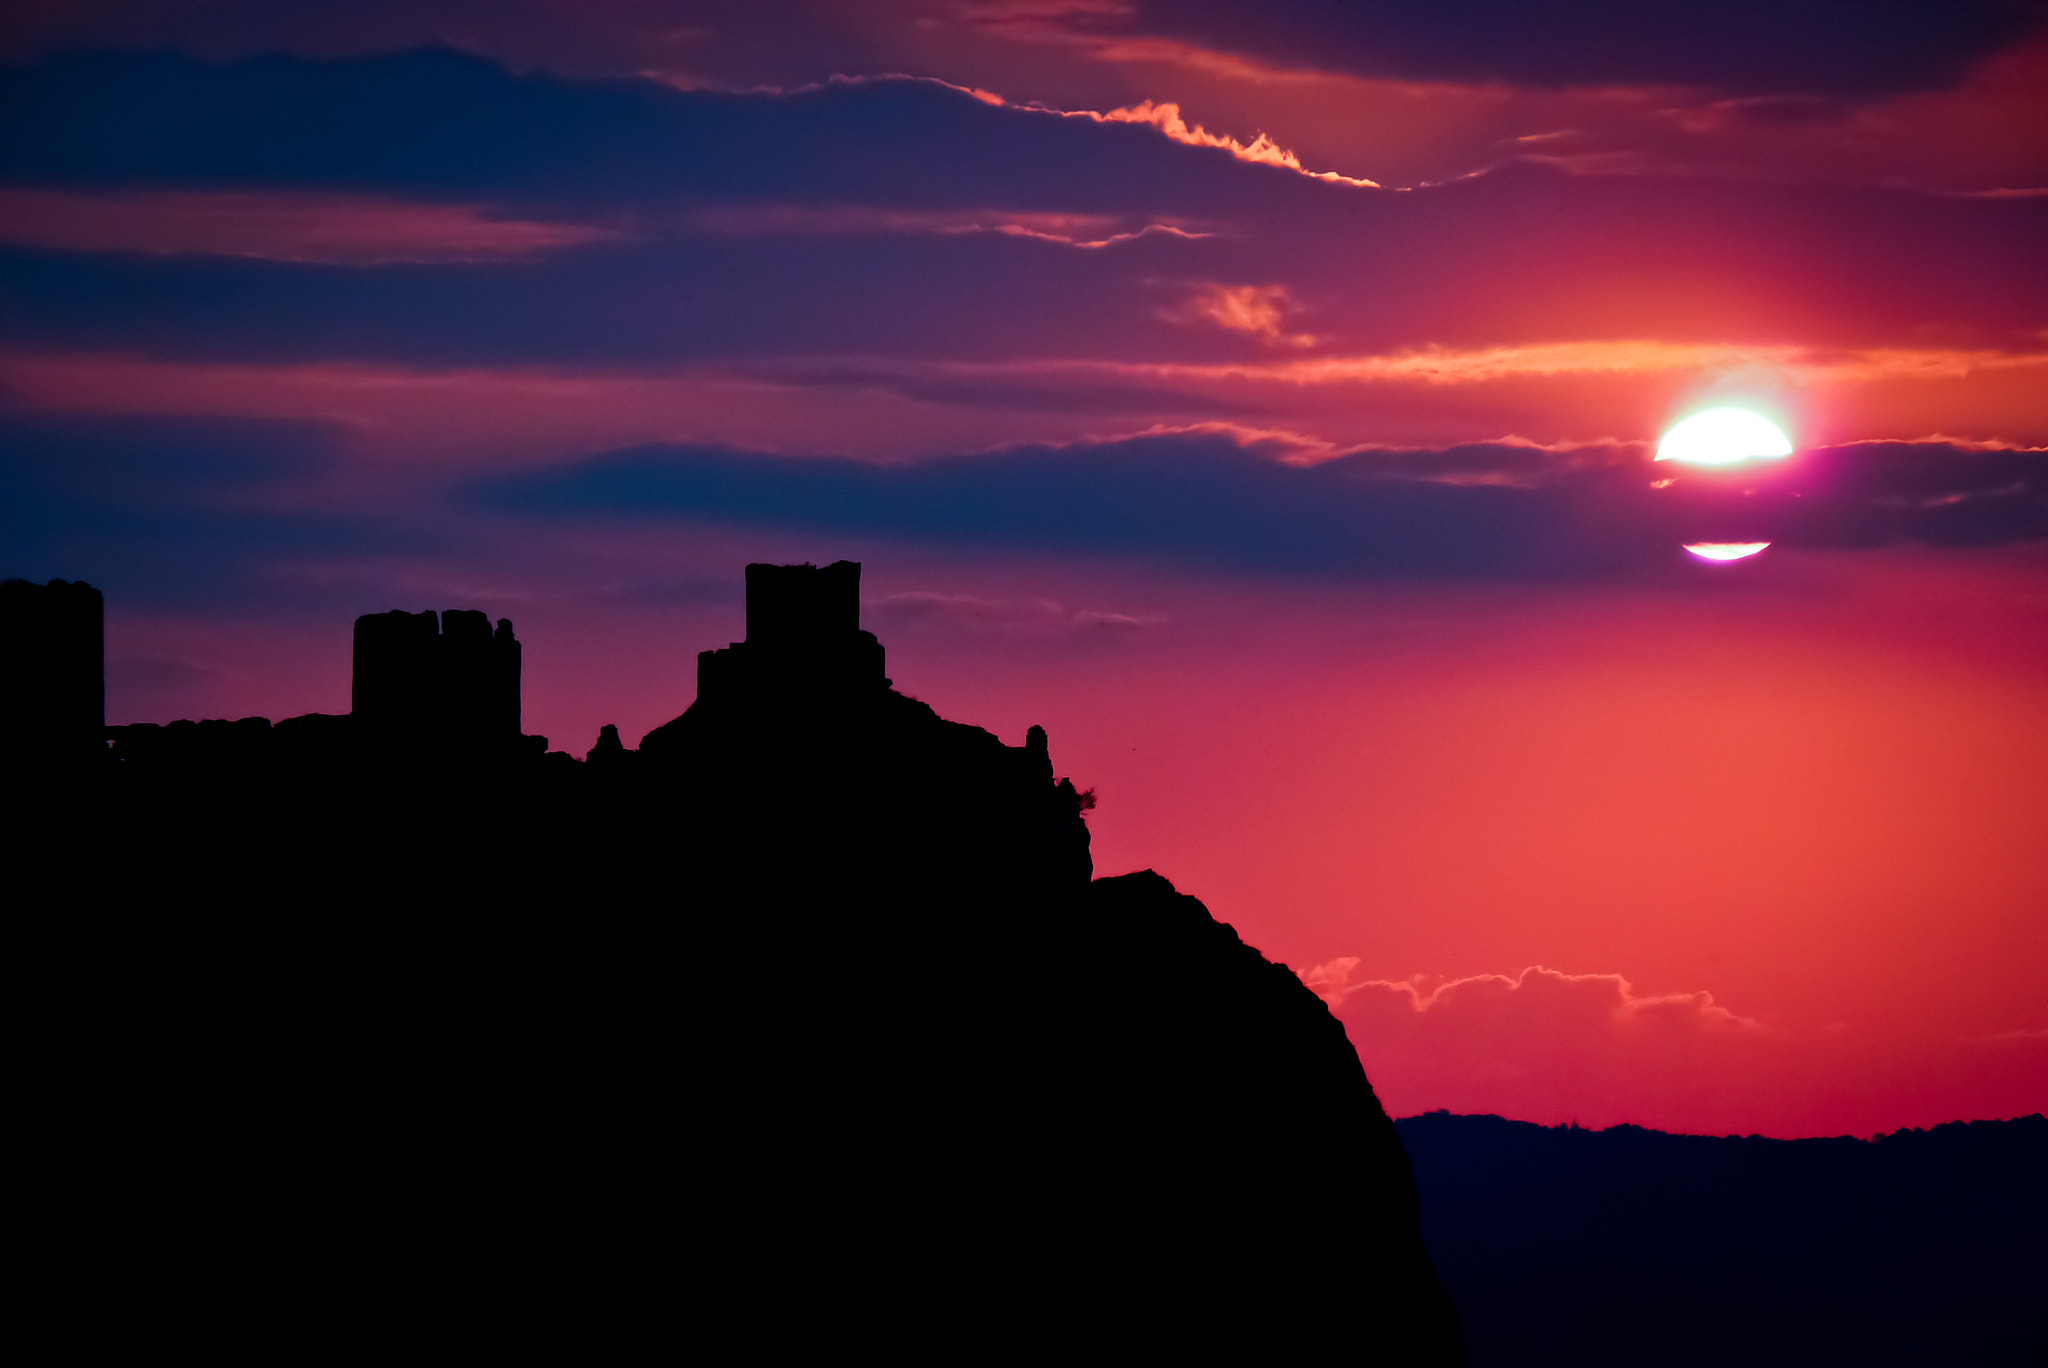 Photograph When the sun goes down - Golubac fortress by Dejan Trifunovic on 500px